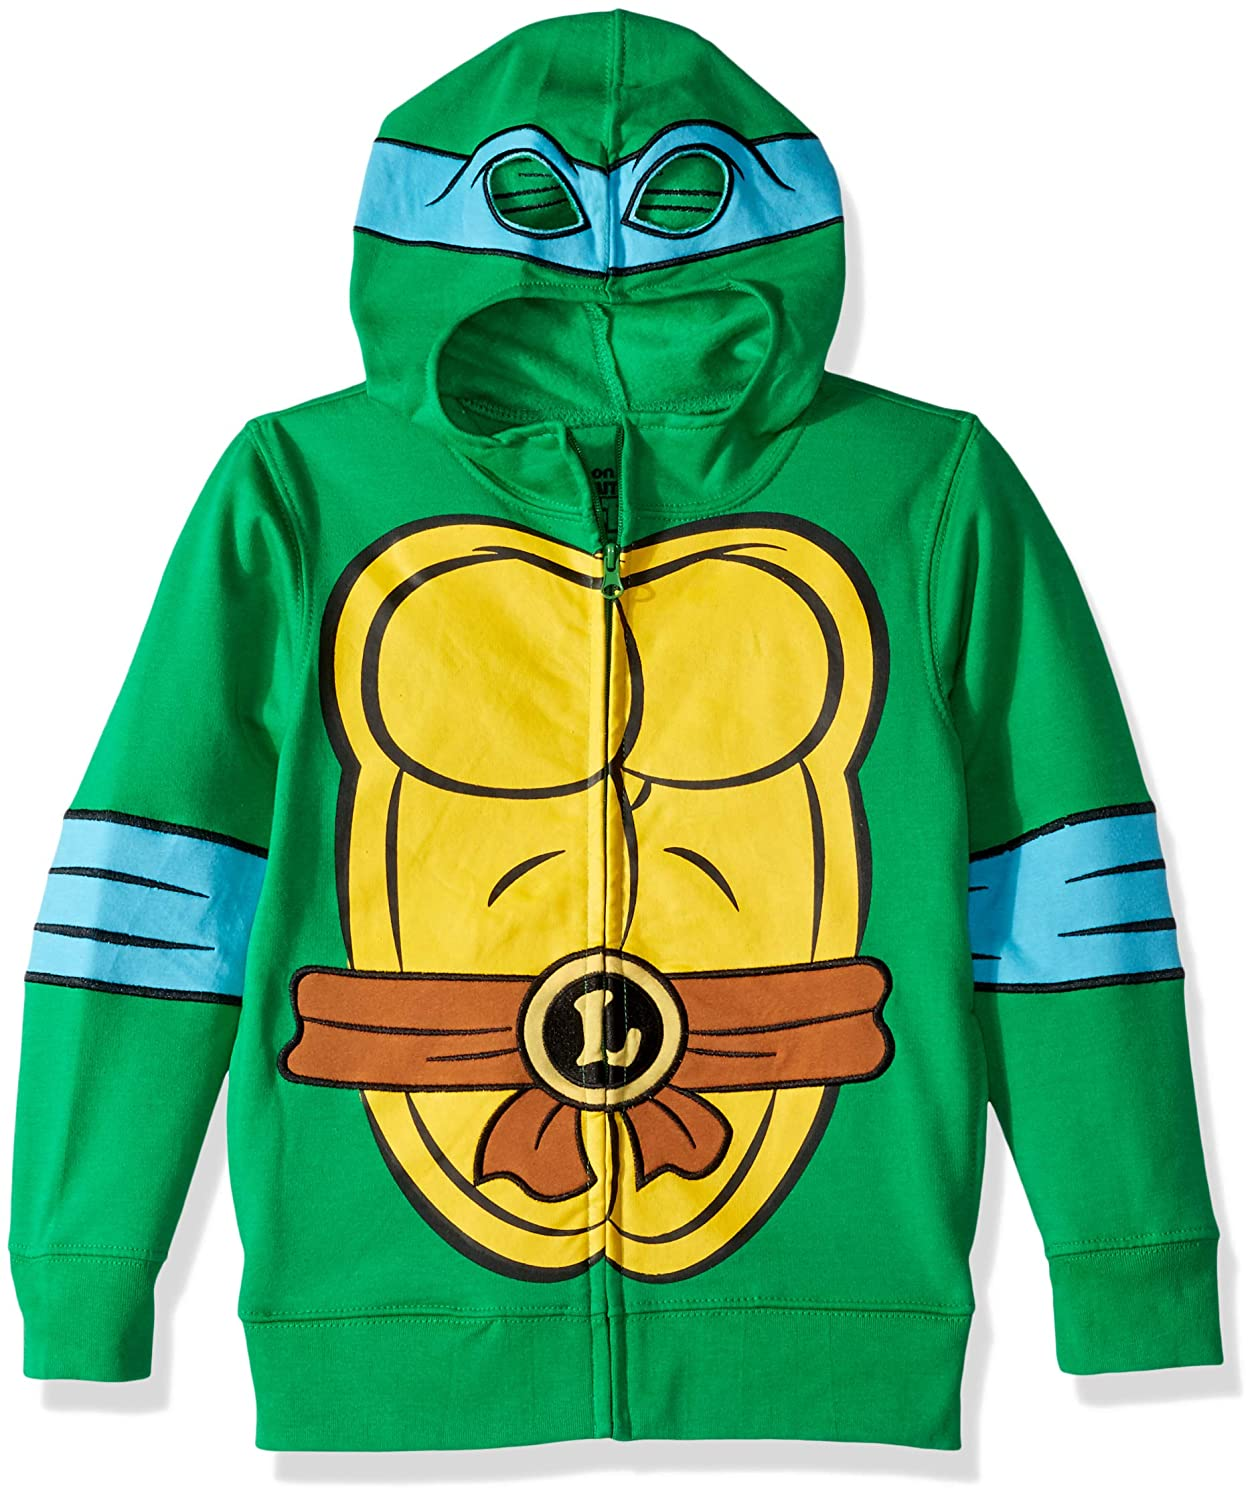 Teenage Mutant Ninja Turtles Boys' Leonardo Reptilian Costume Zip Up Hoodie with Mask